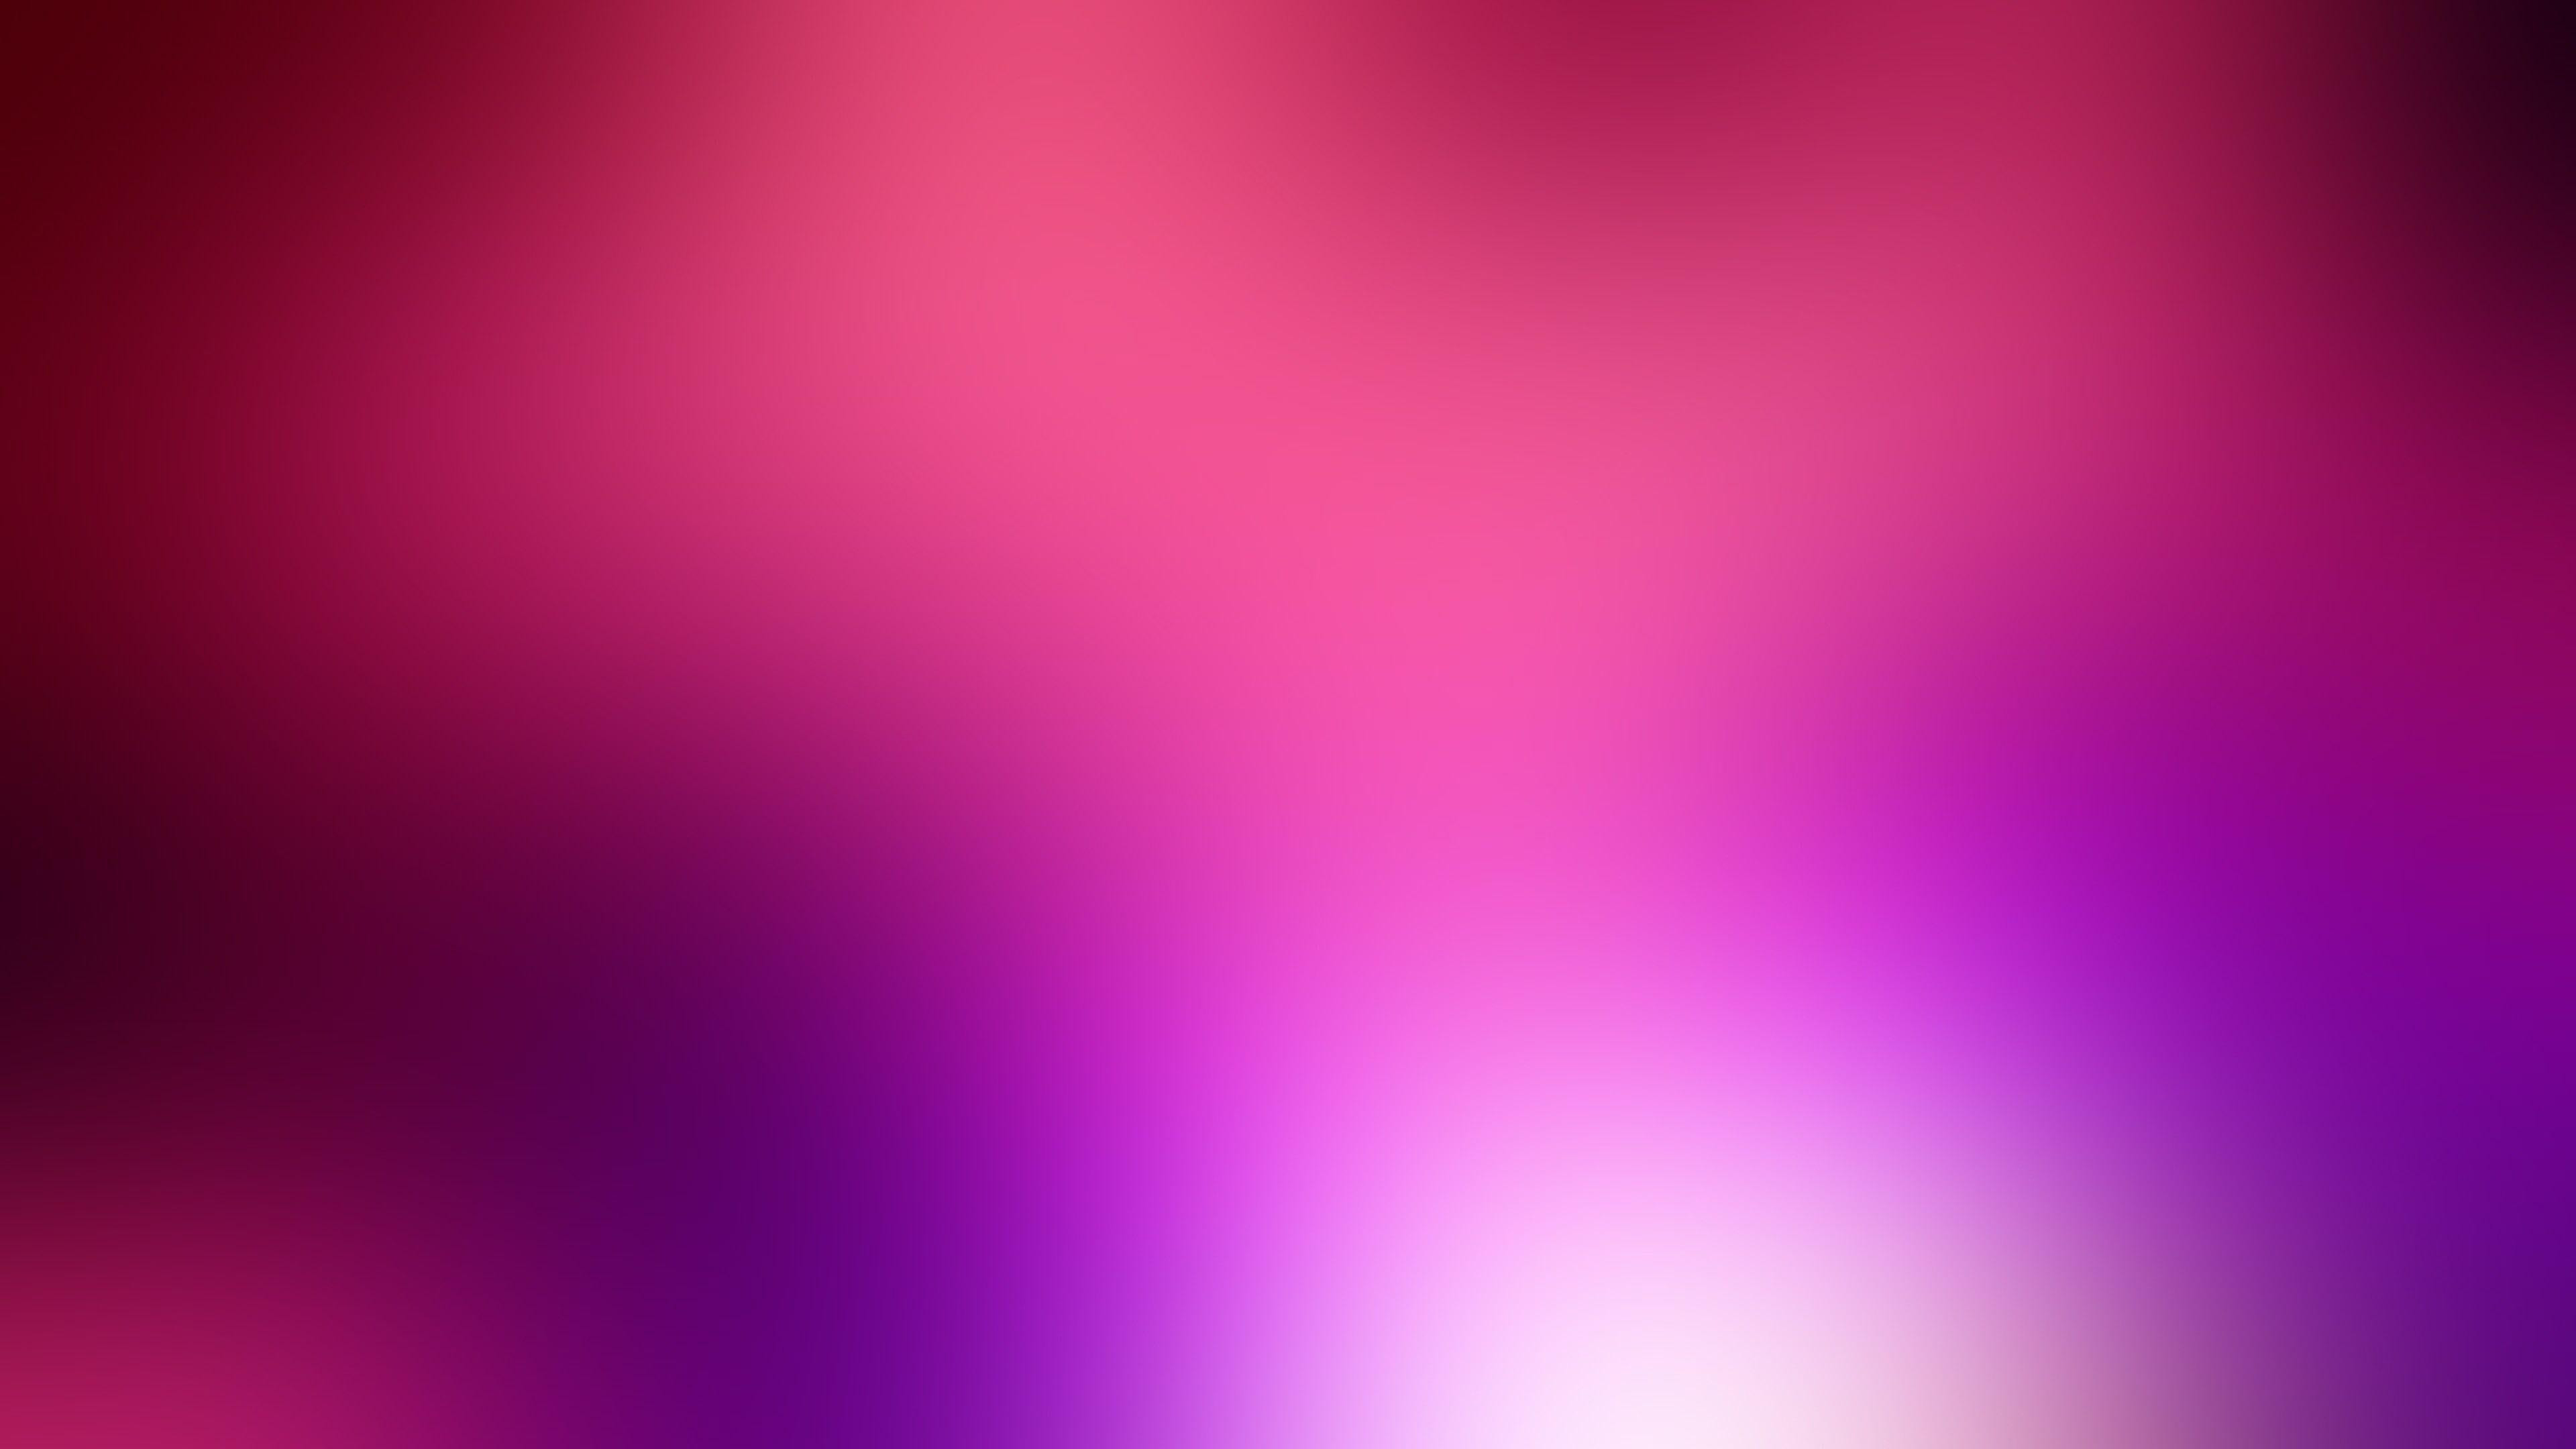 Purple Pink Backgrounds - Wallpaper Cave